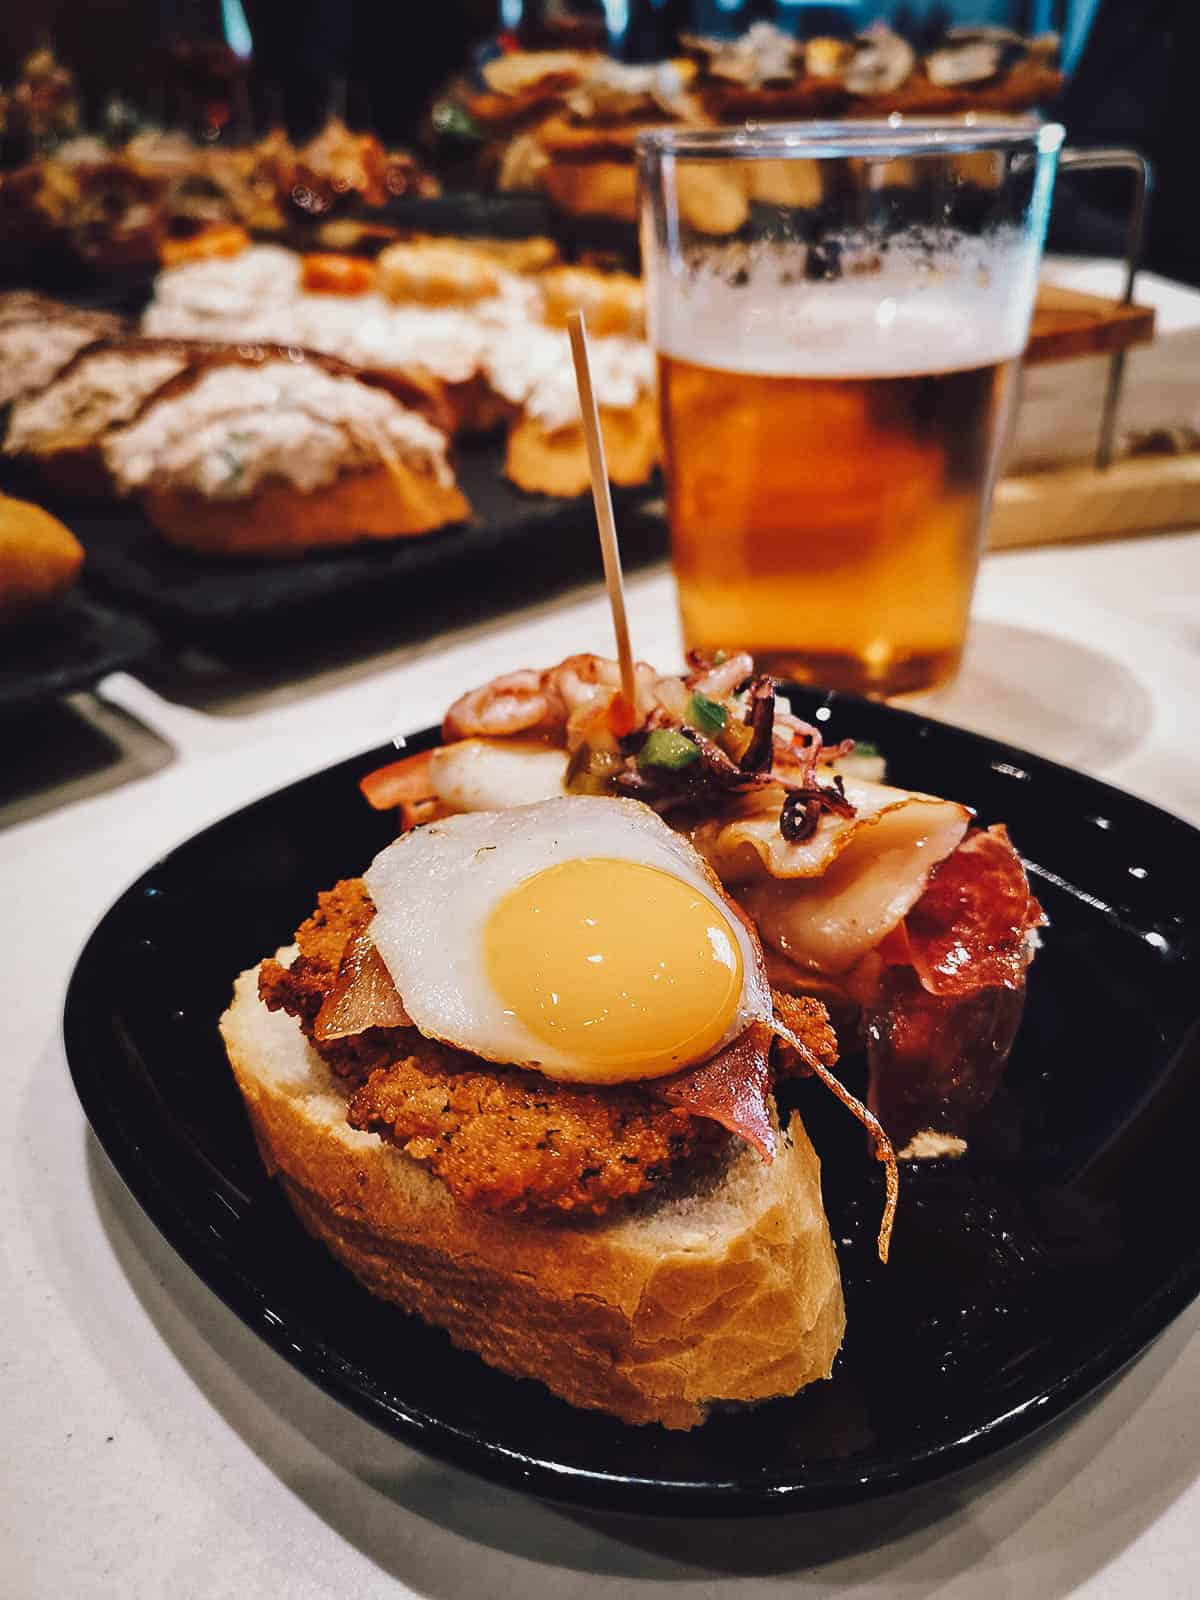 Pair of pintxos on a plate with beer